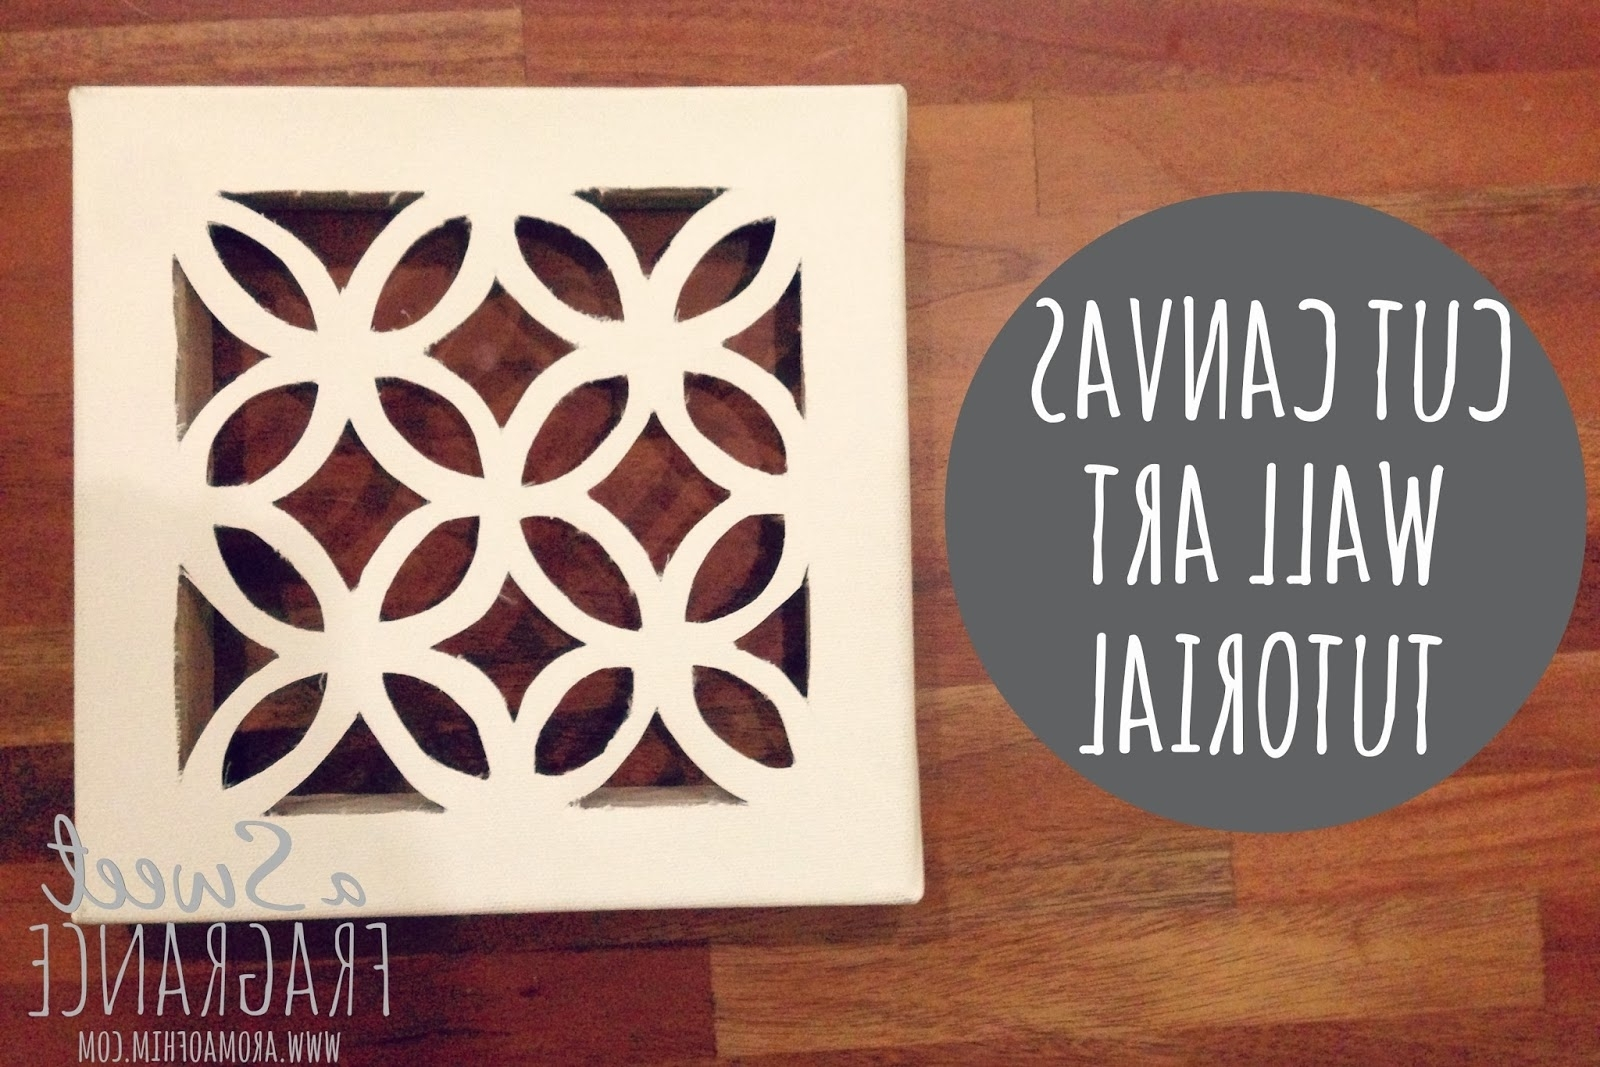 Widely Used Diy Cut Canvas Wall Art That Looks Expensive But Is Cheap To Make With Diy Canvas Wall Art (View 15 of 15)